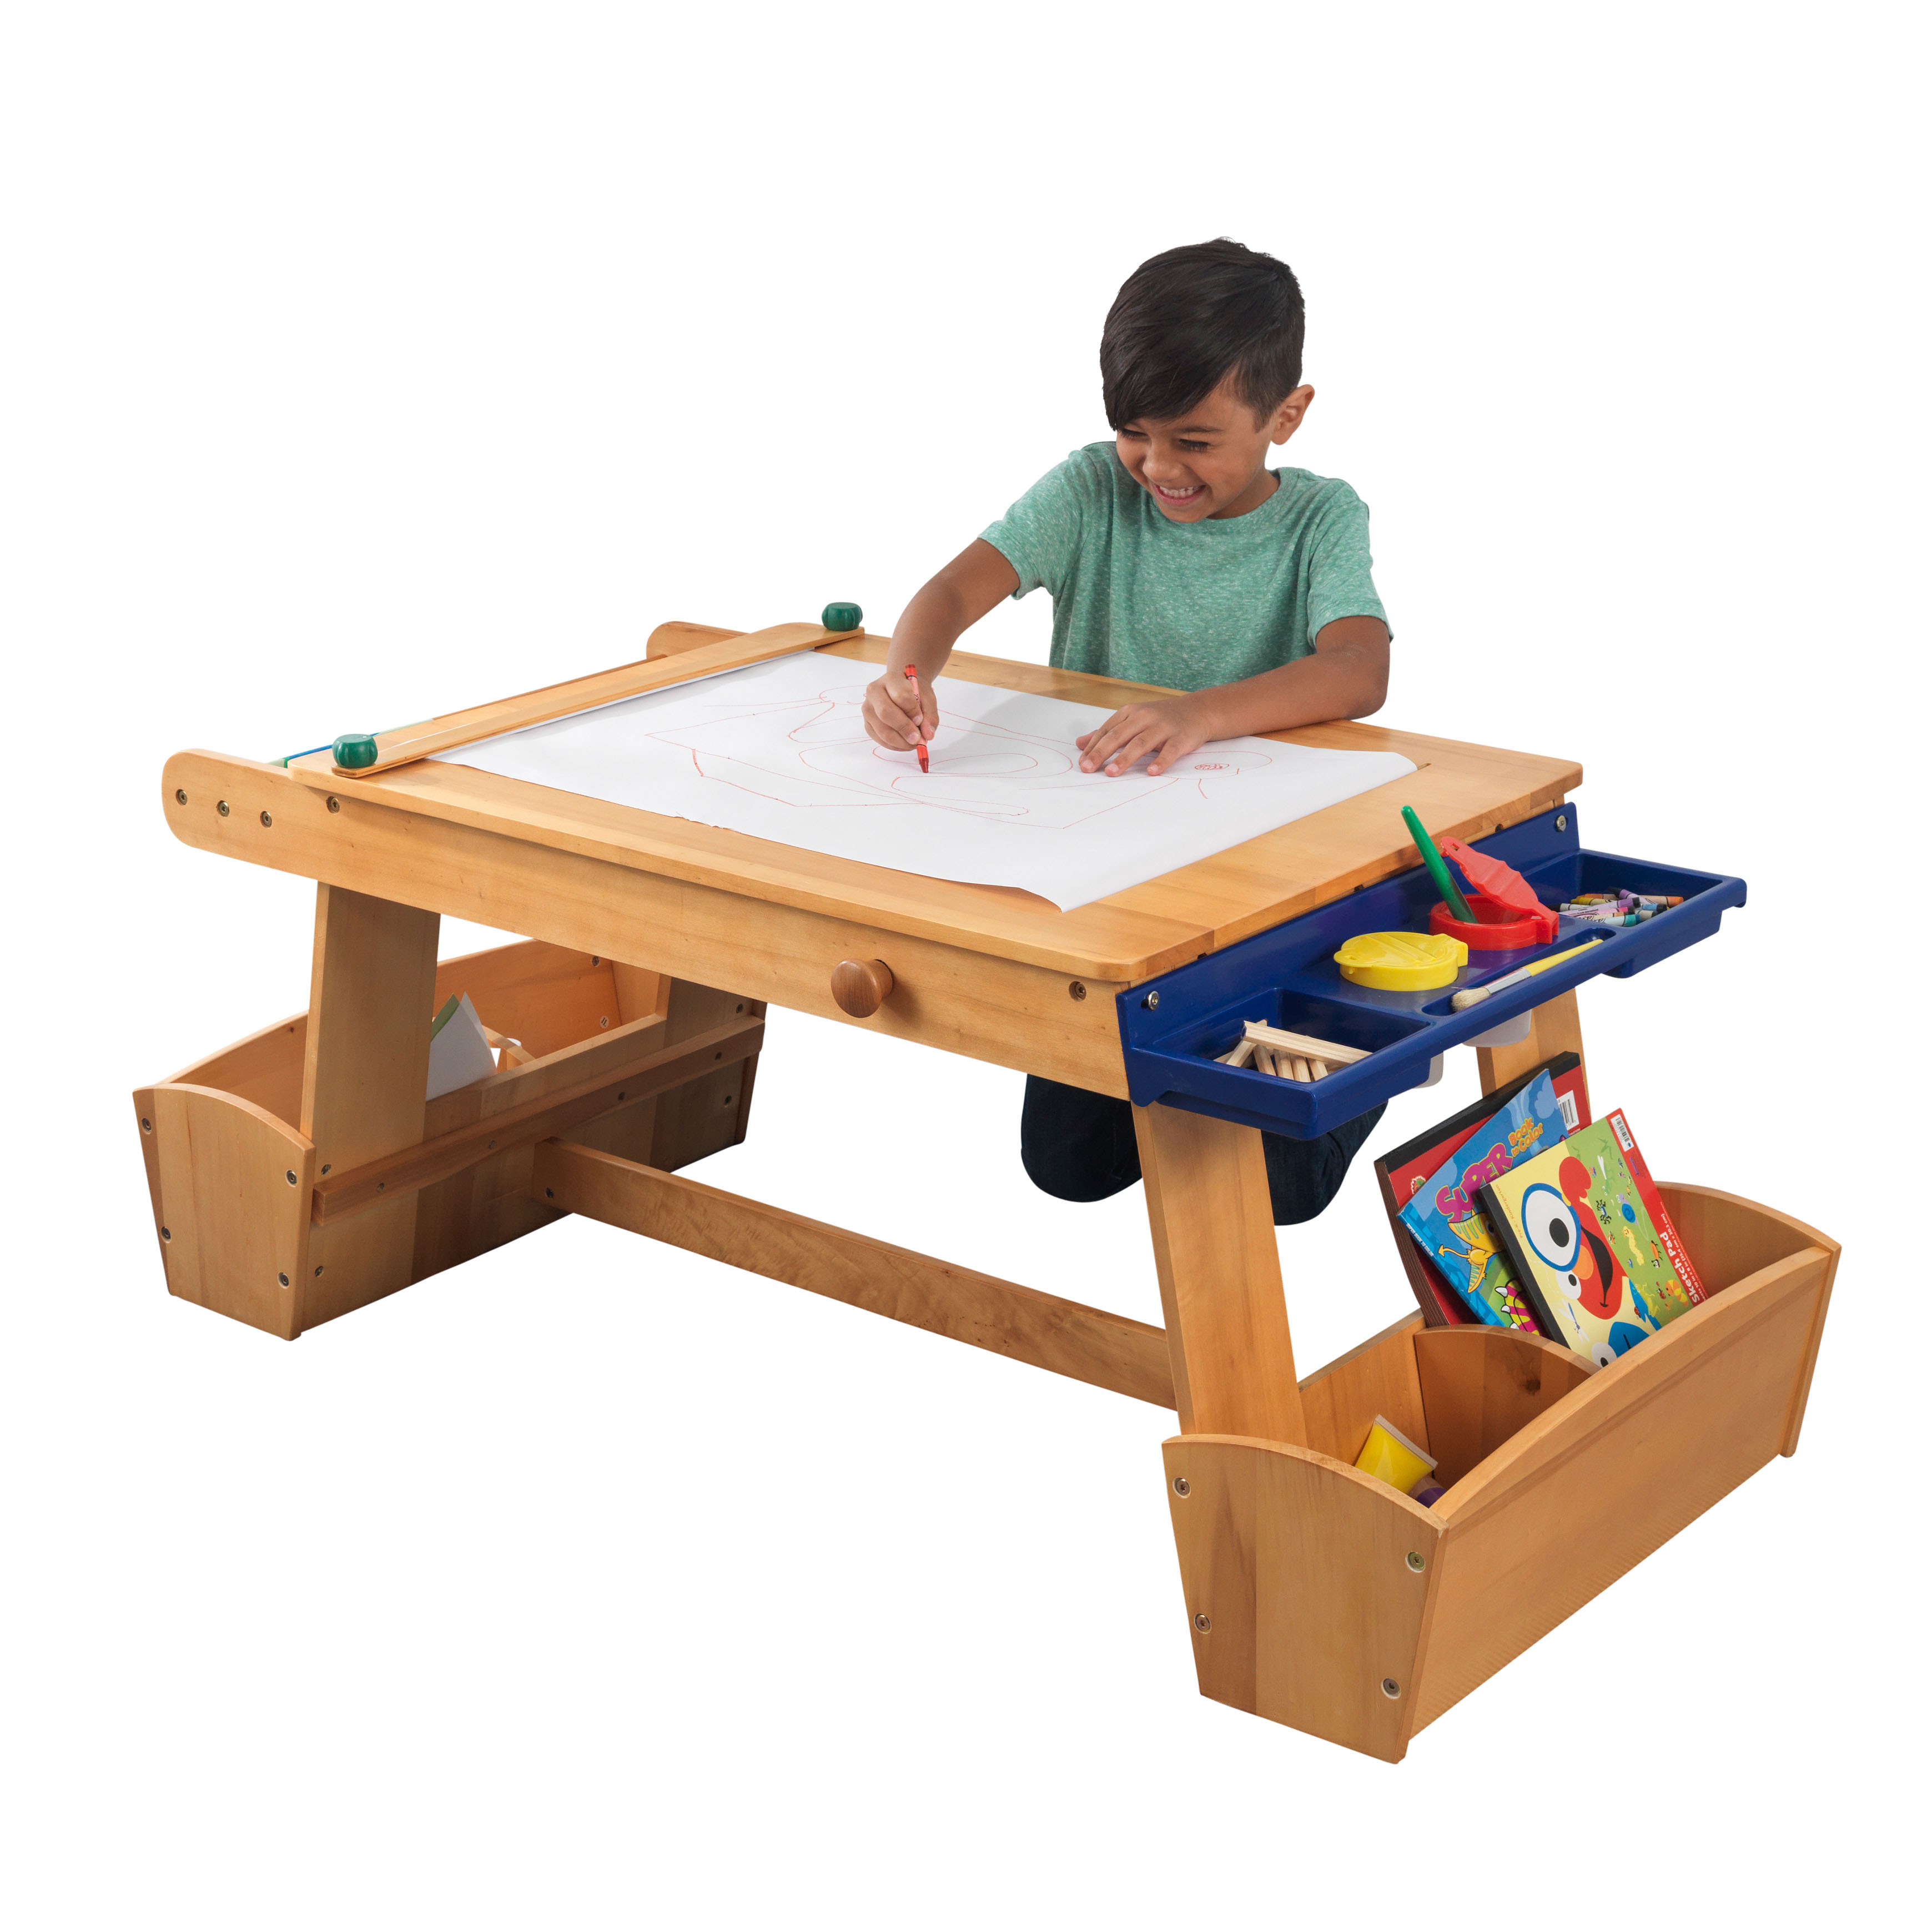 KidKraft Art Table with Drying Rack & Storage by KidKraft